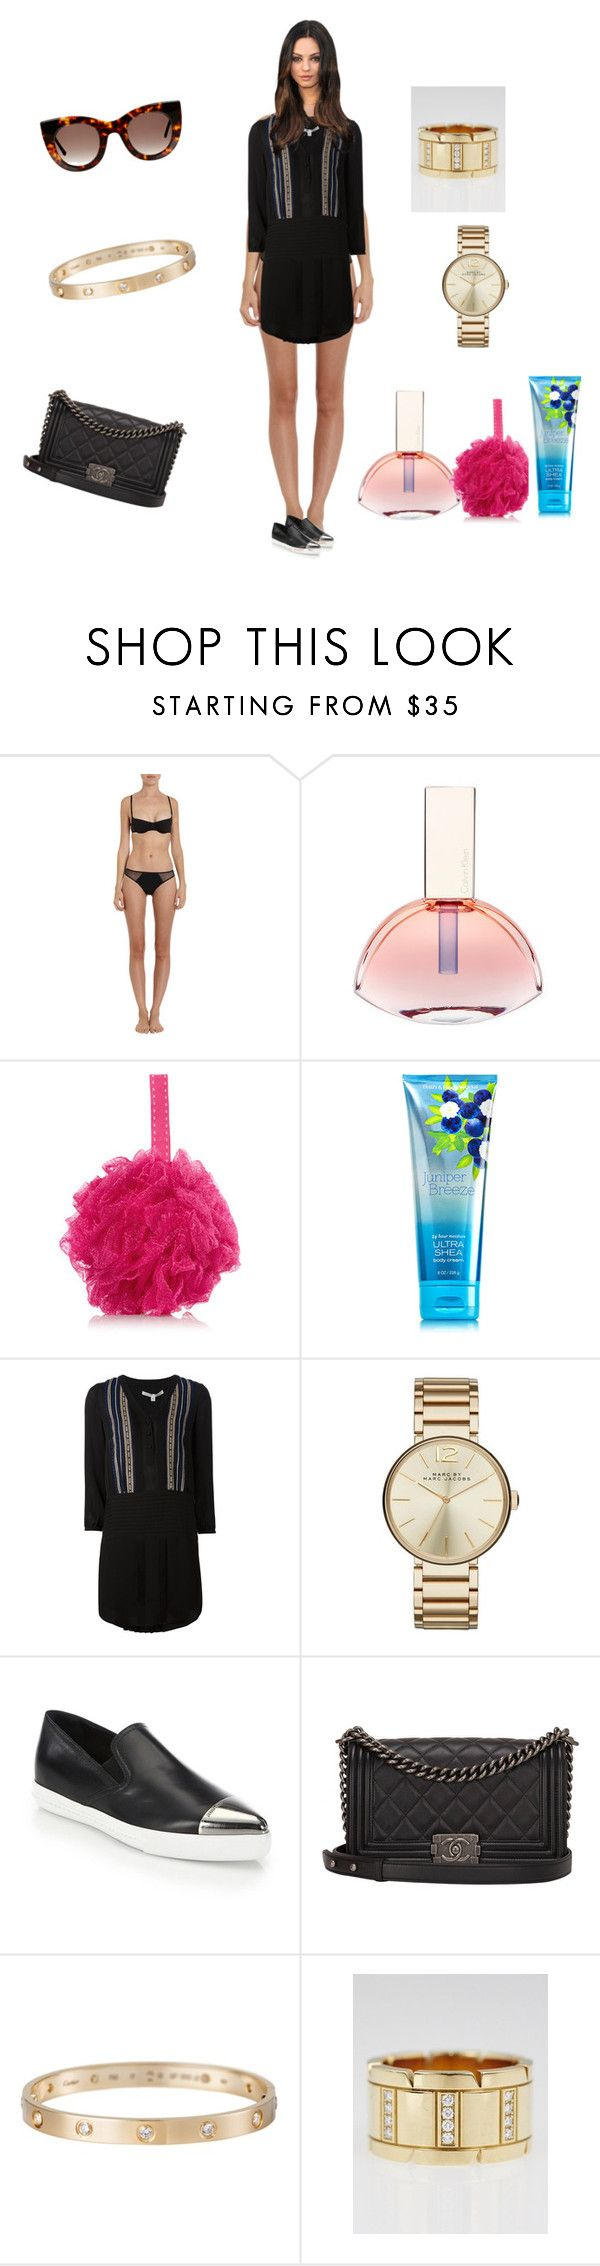 """""""Untitled #2257"""" by rine23 ❤ liked on Polyvore featuring Cosabella, Calvin Klein, Veronica Beard, Marc by Marc Jacobs, Miu Miu, Chanel, Cartier and Thierry Lasry"""